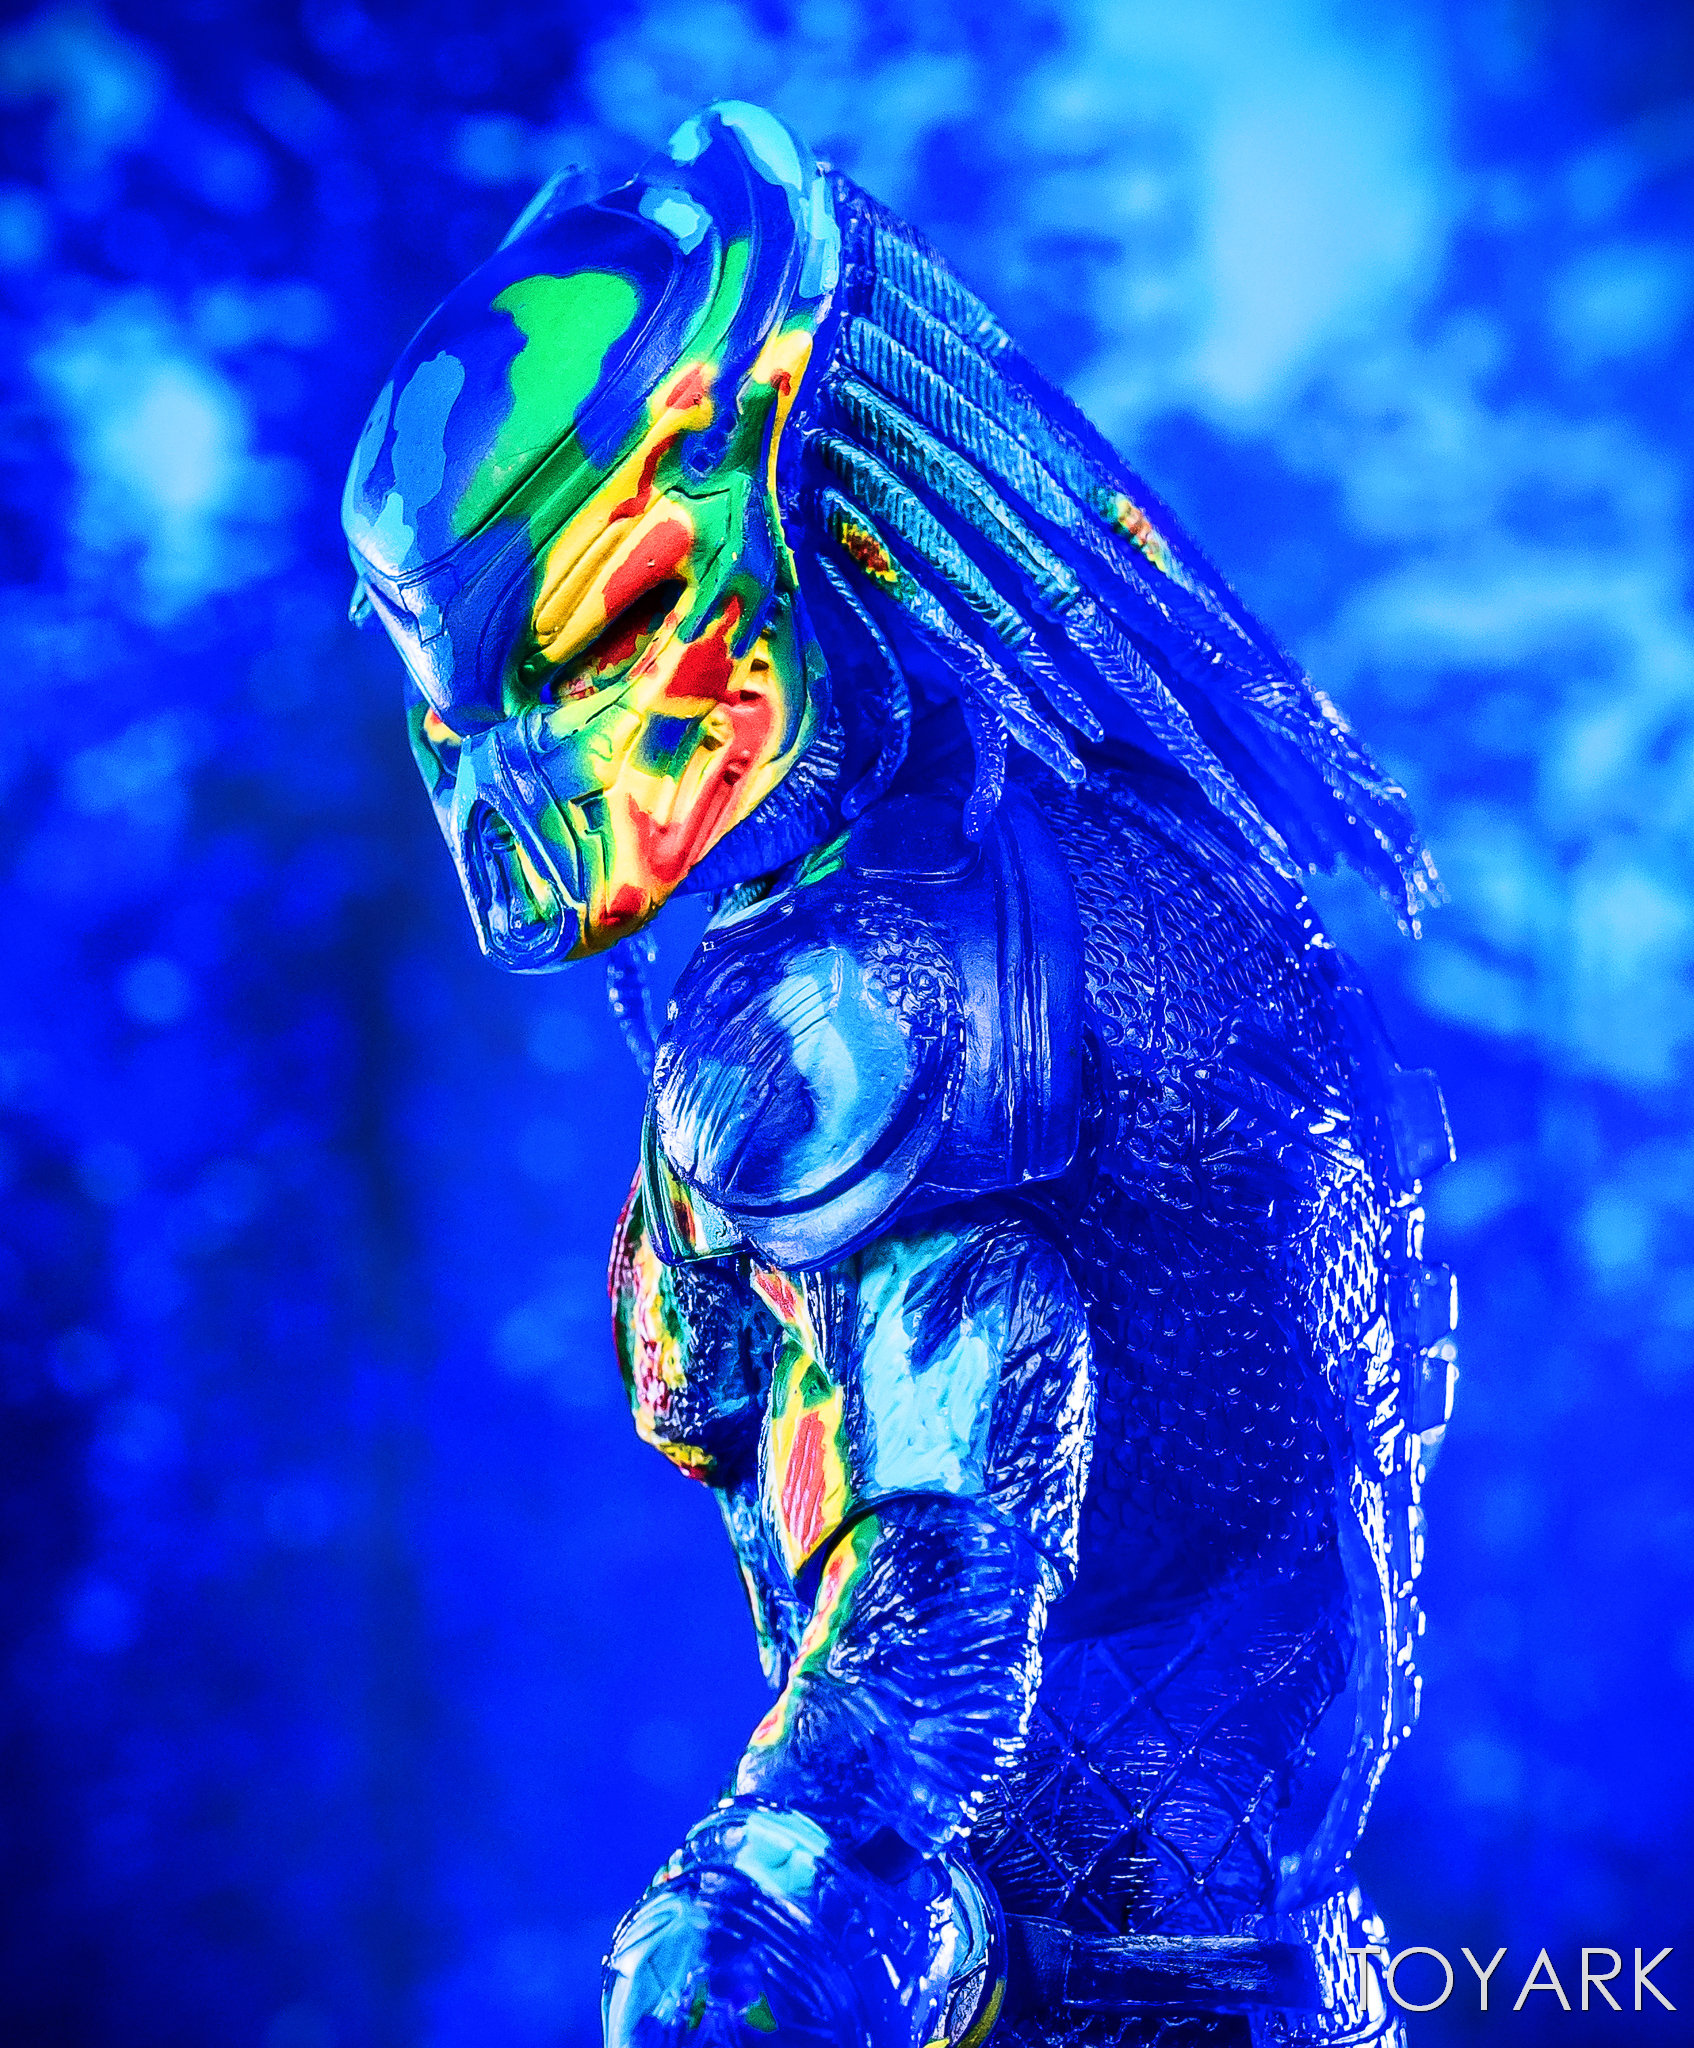 https://news.toyark.com/wp-content/uploads/sites/4/2018/12/NECA-Predator-2018-Thermal-Vision-Predator-036.jpg